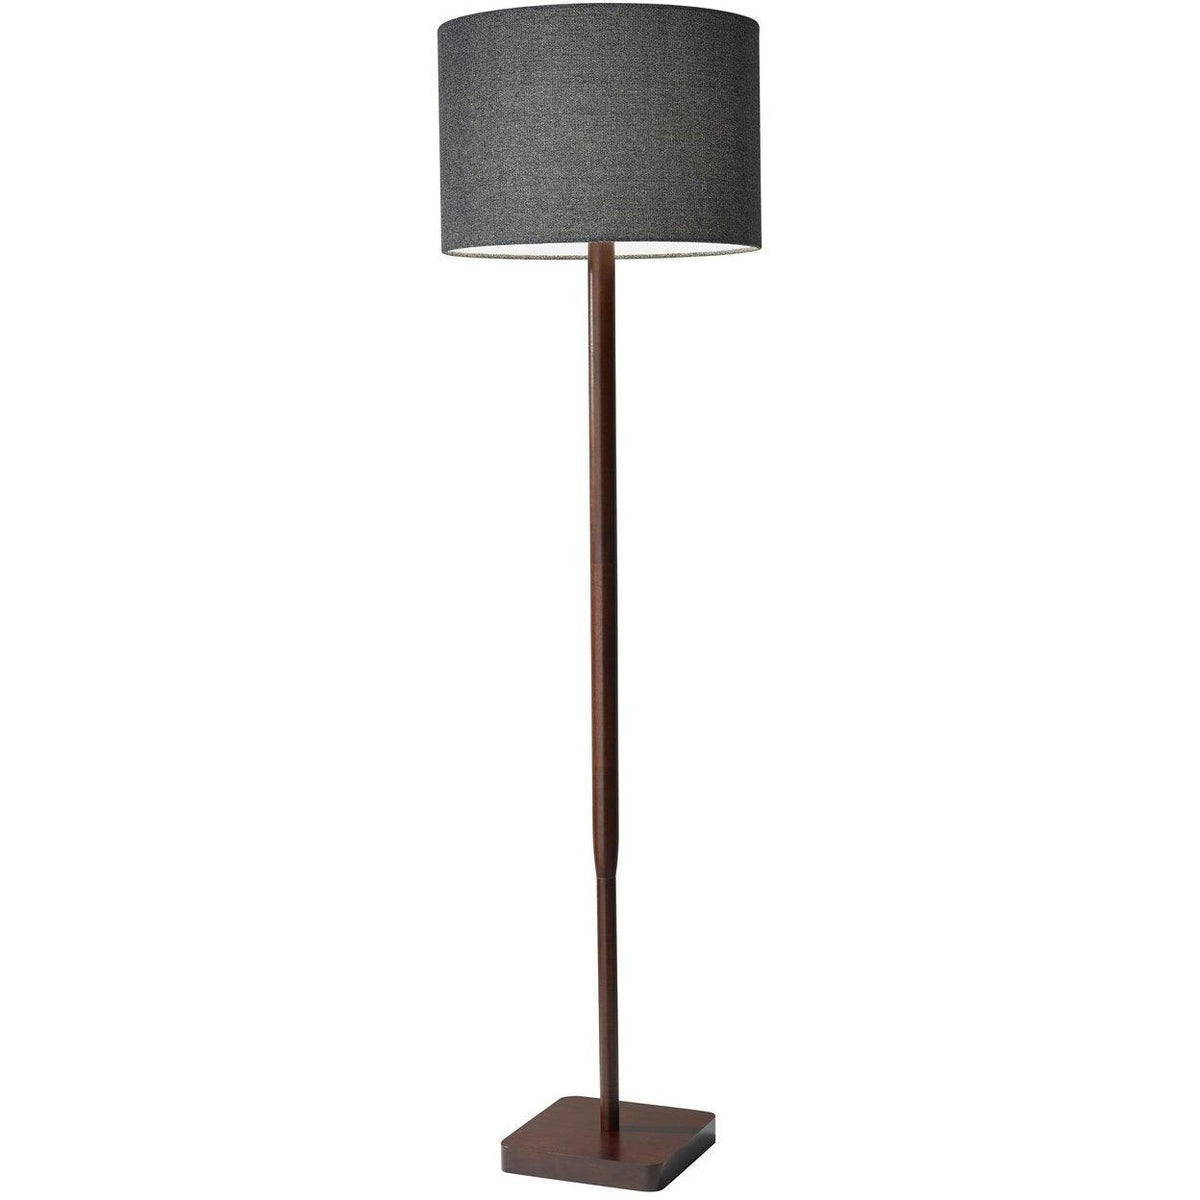 Adesso Home - 4093-15 - One Light Floor Lamp - Ellis - Walnut Rubber Wood